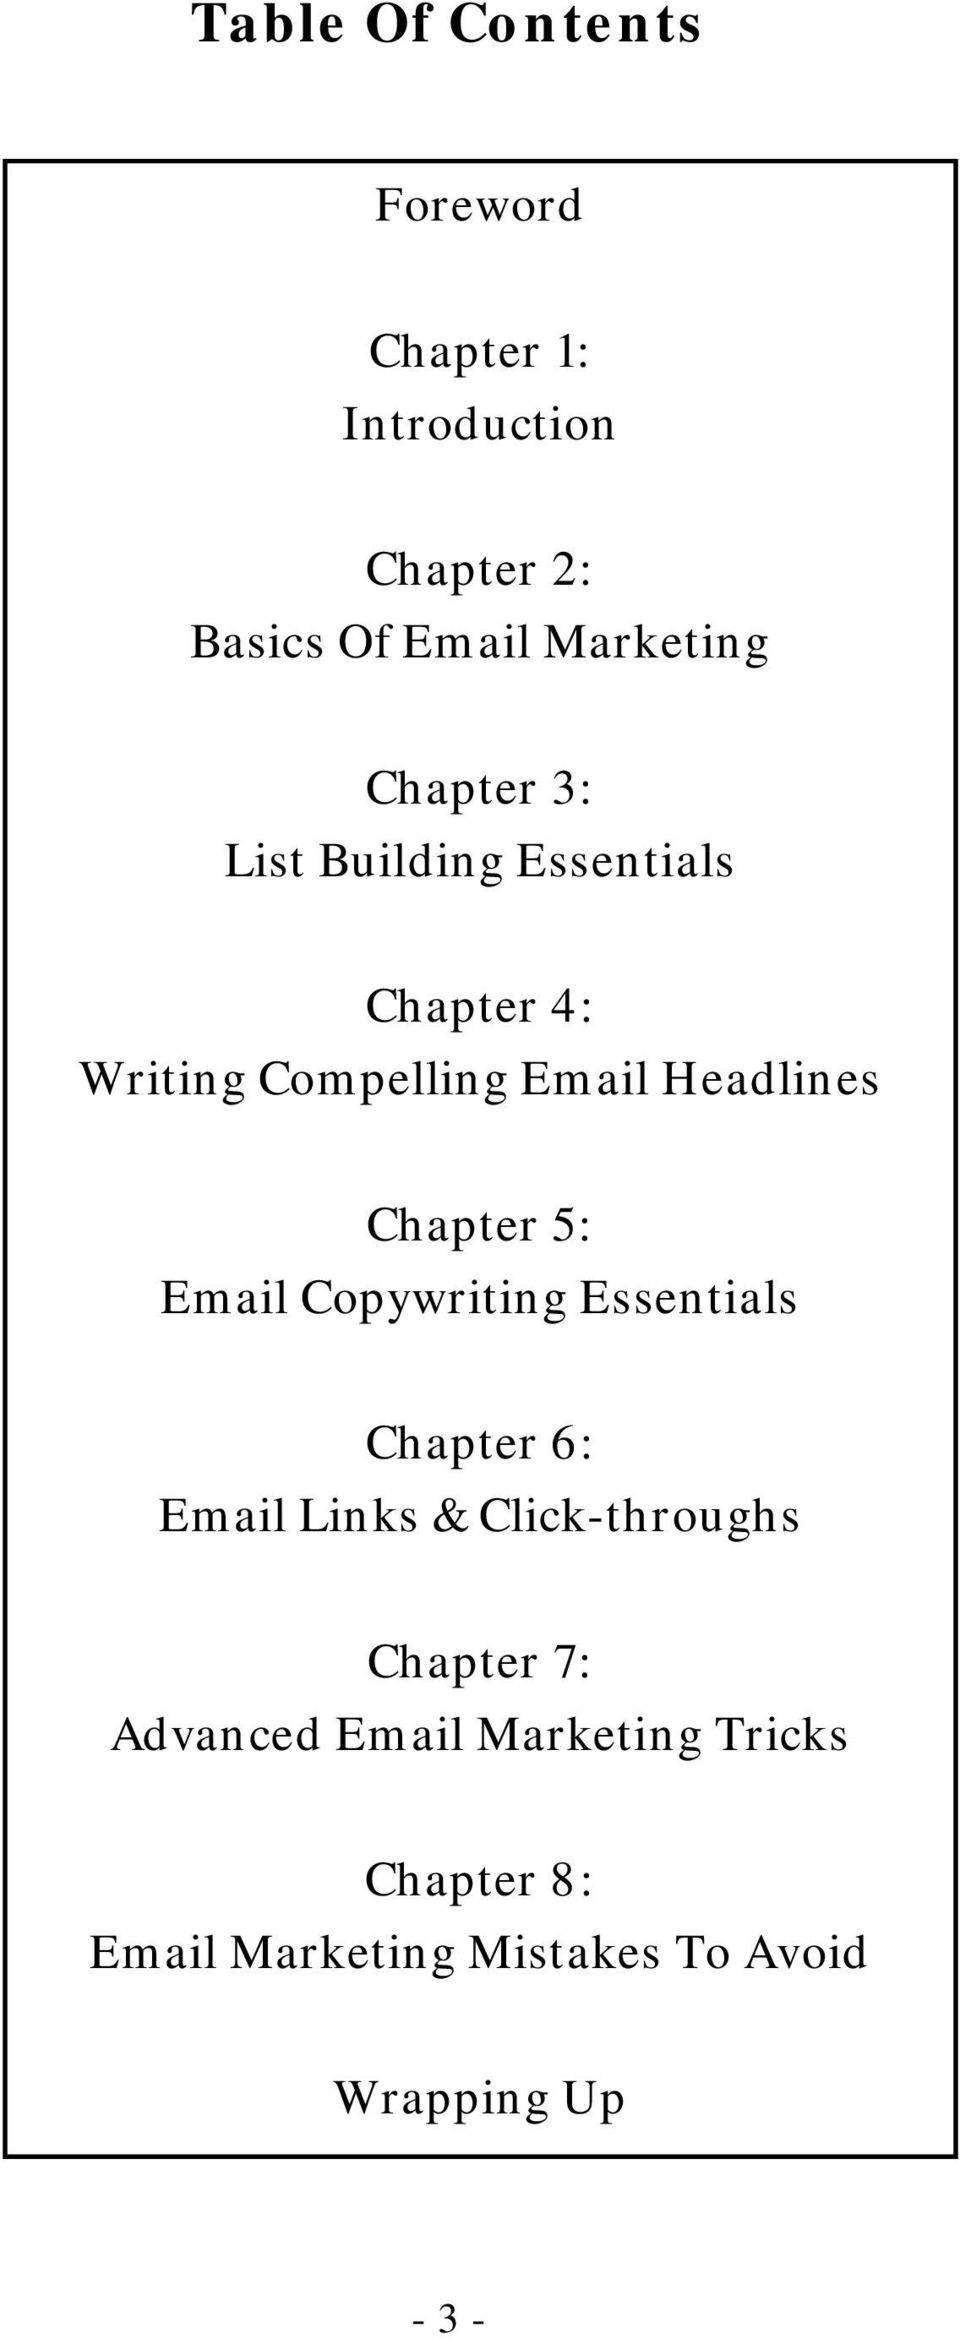 Chapter 5: Email Copywriting Essentials Chapter 6: Email Links & Click-throughs Chapter